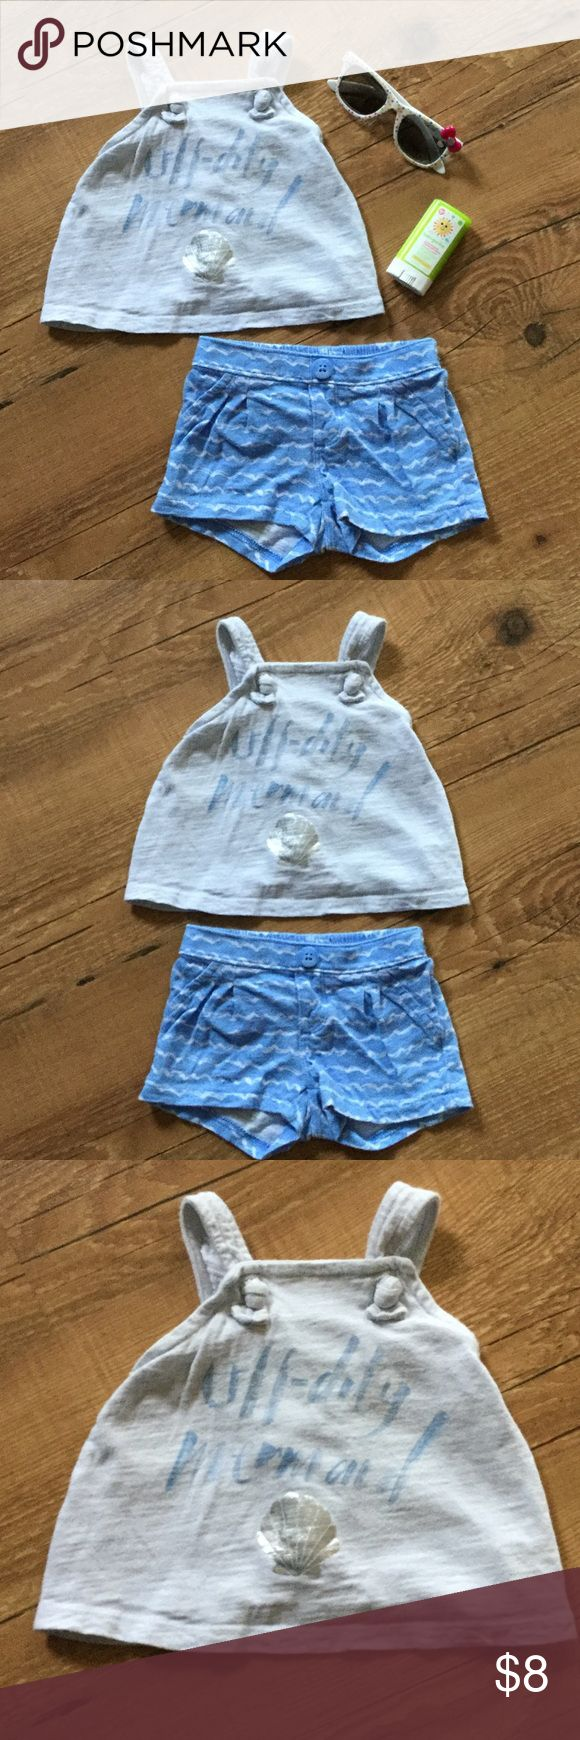 "Blue and gray mermaid shorts outfit Blue shorts with white waves, light gray tank top with criss cross straps and a tulip back. Top says ""off duty mermaid"" in blue and has a metallic sea shell underneath the writing.  Please ask any necessary questions prior to purchasing. No trades. Save even more with a bundle discount! Old Navy Matching Sets"